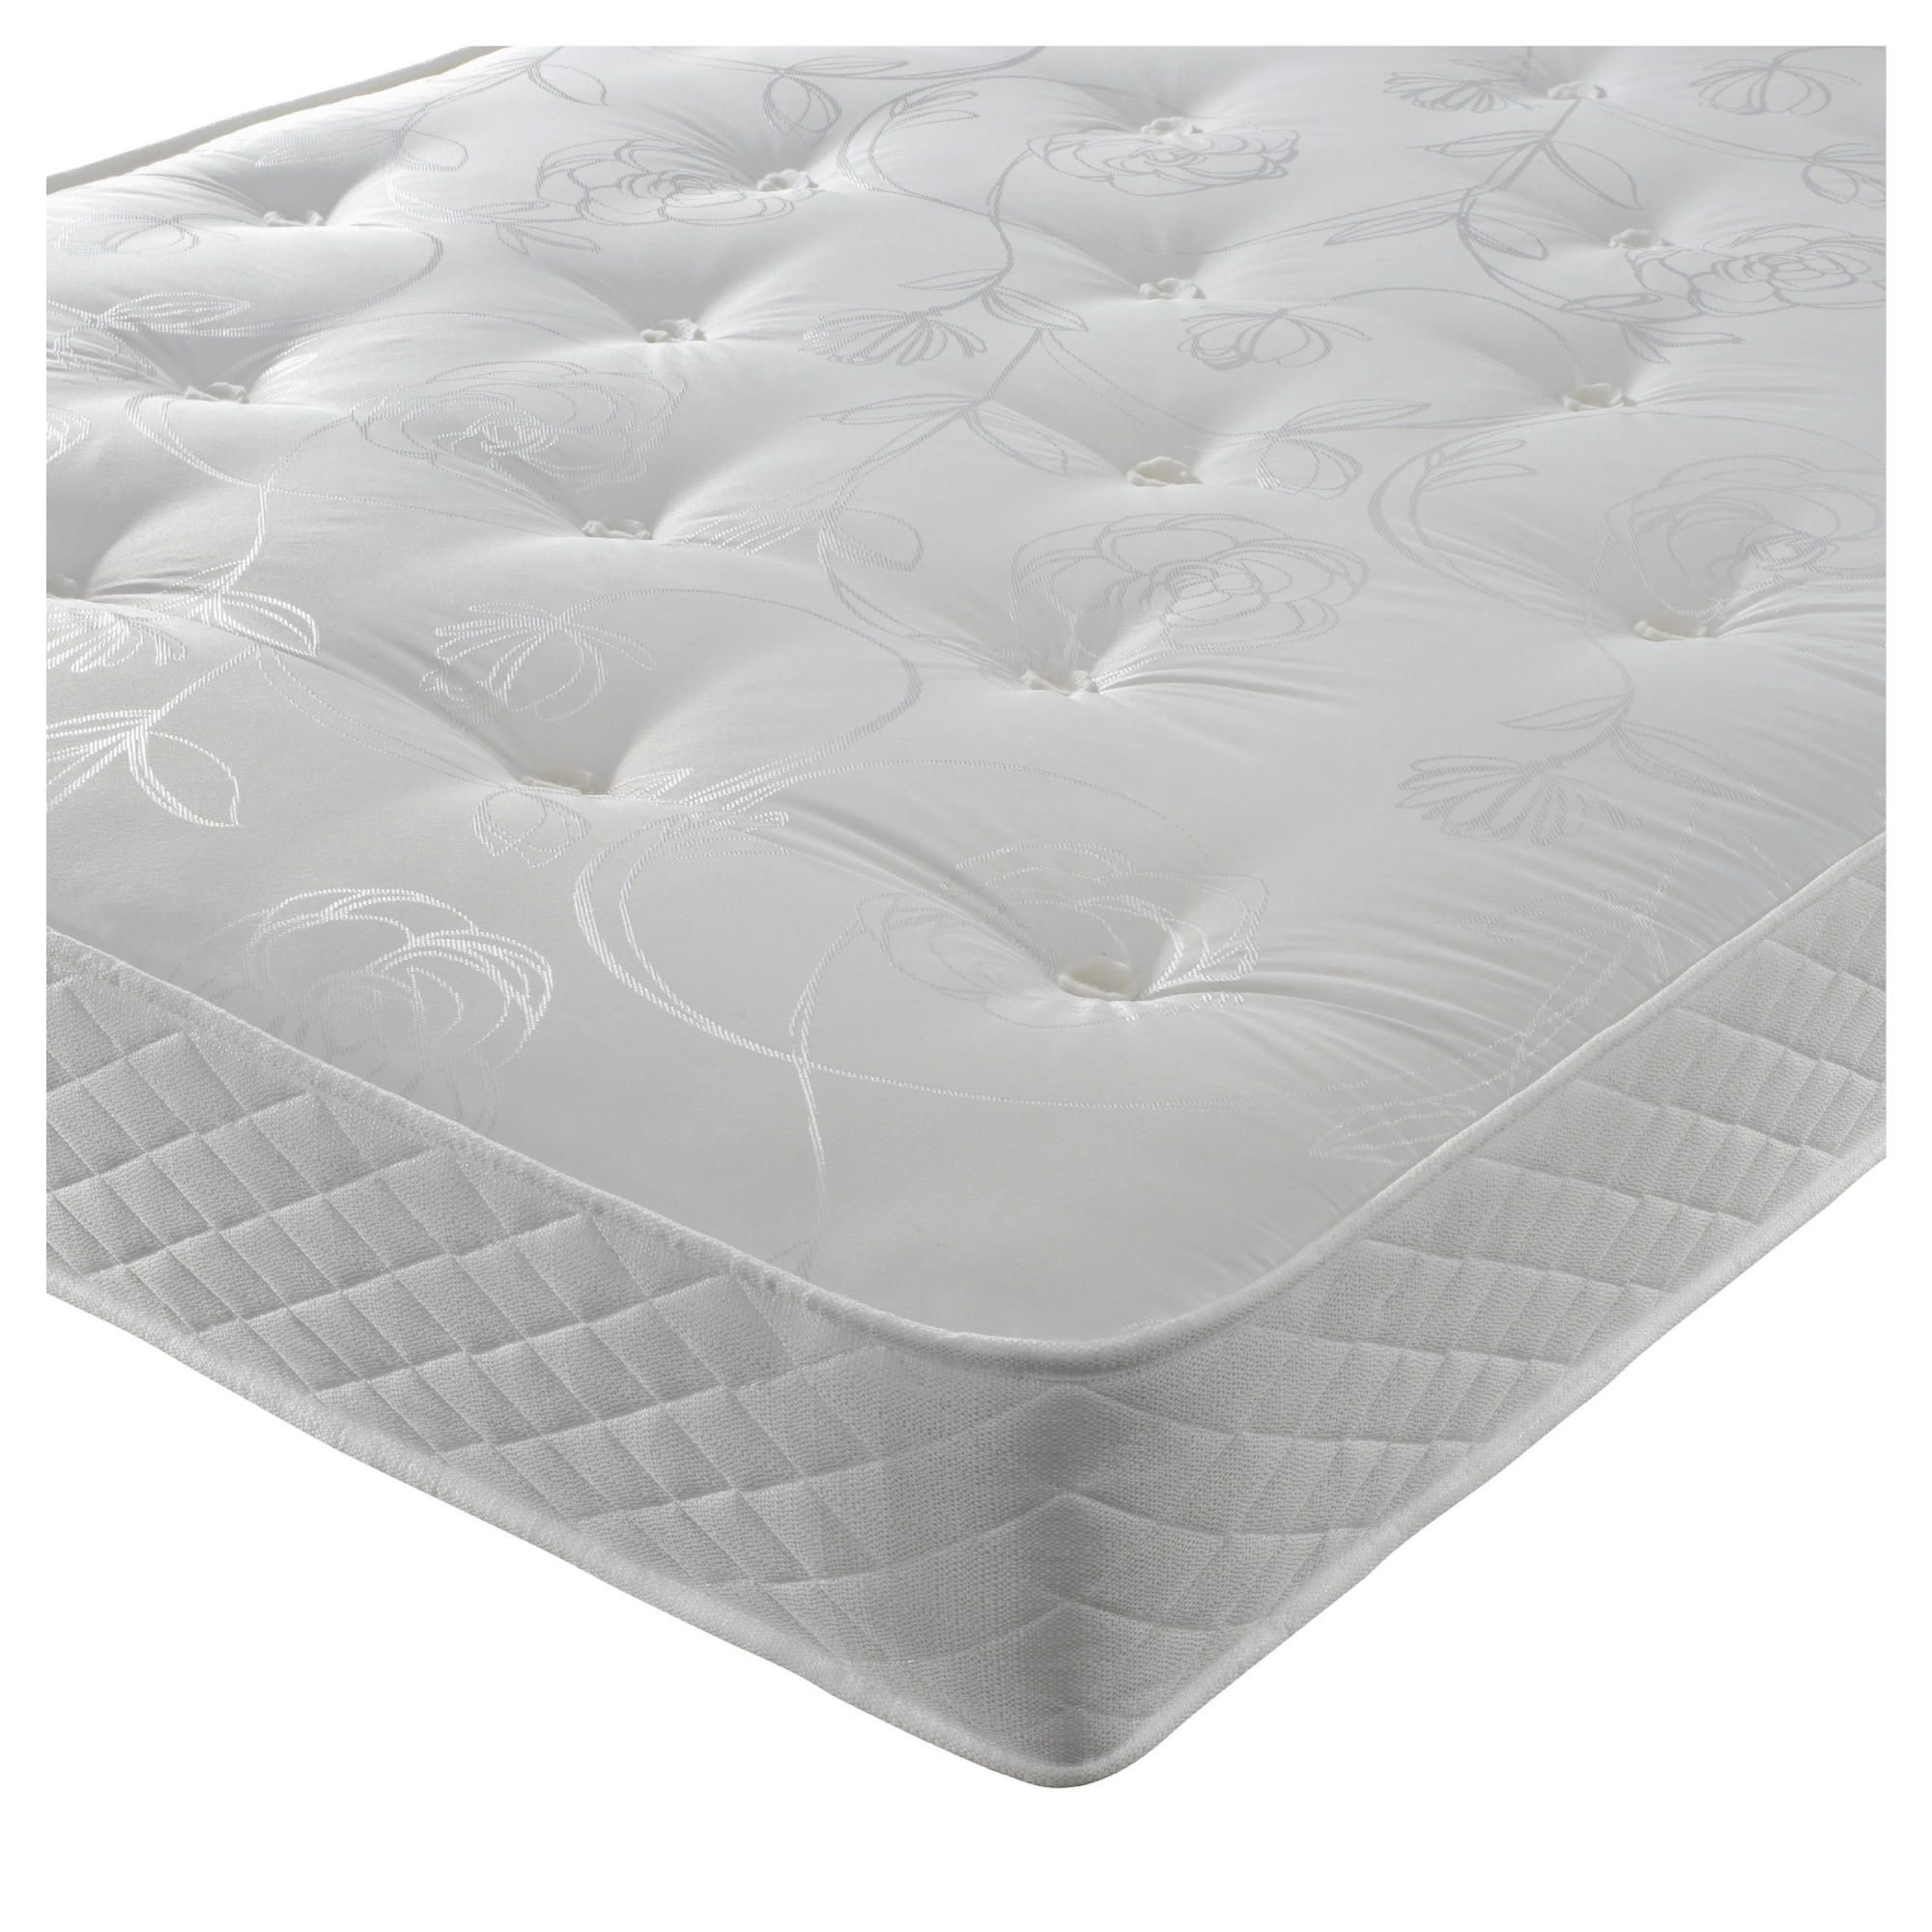 Cheap super king mattress leather storage bed with mattress firm norman ok 100 6 memory foam Cheapest king size mattress